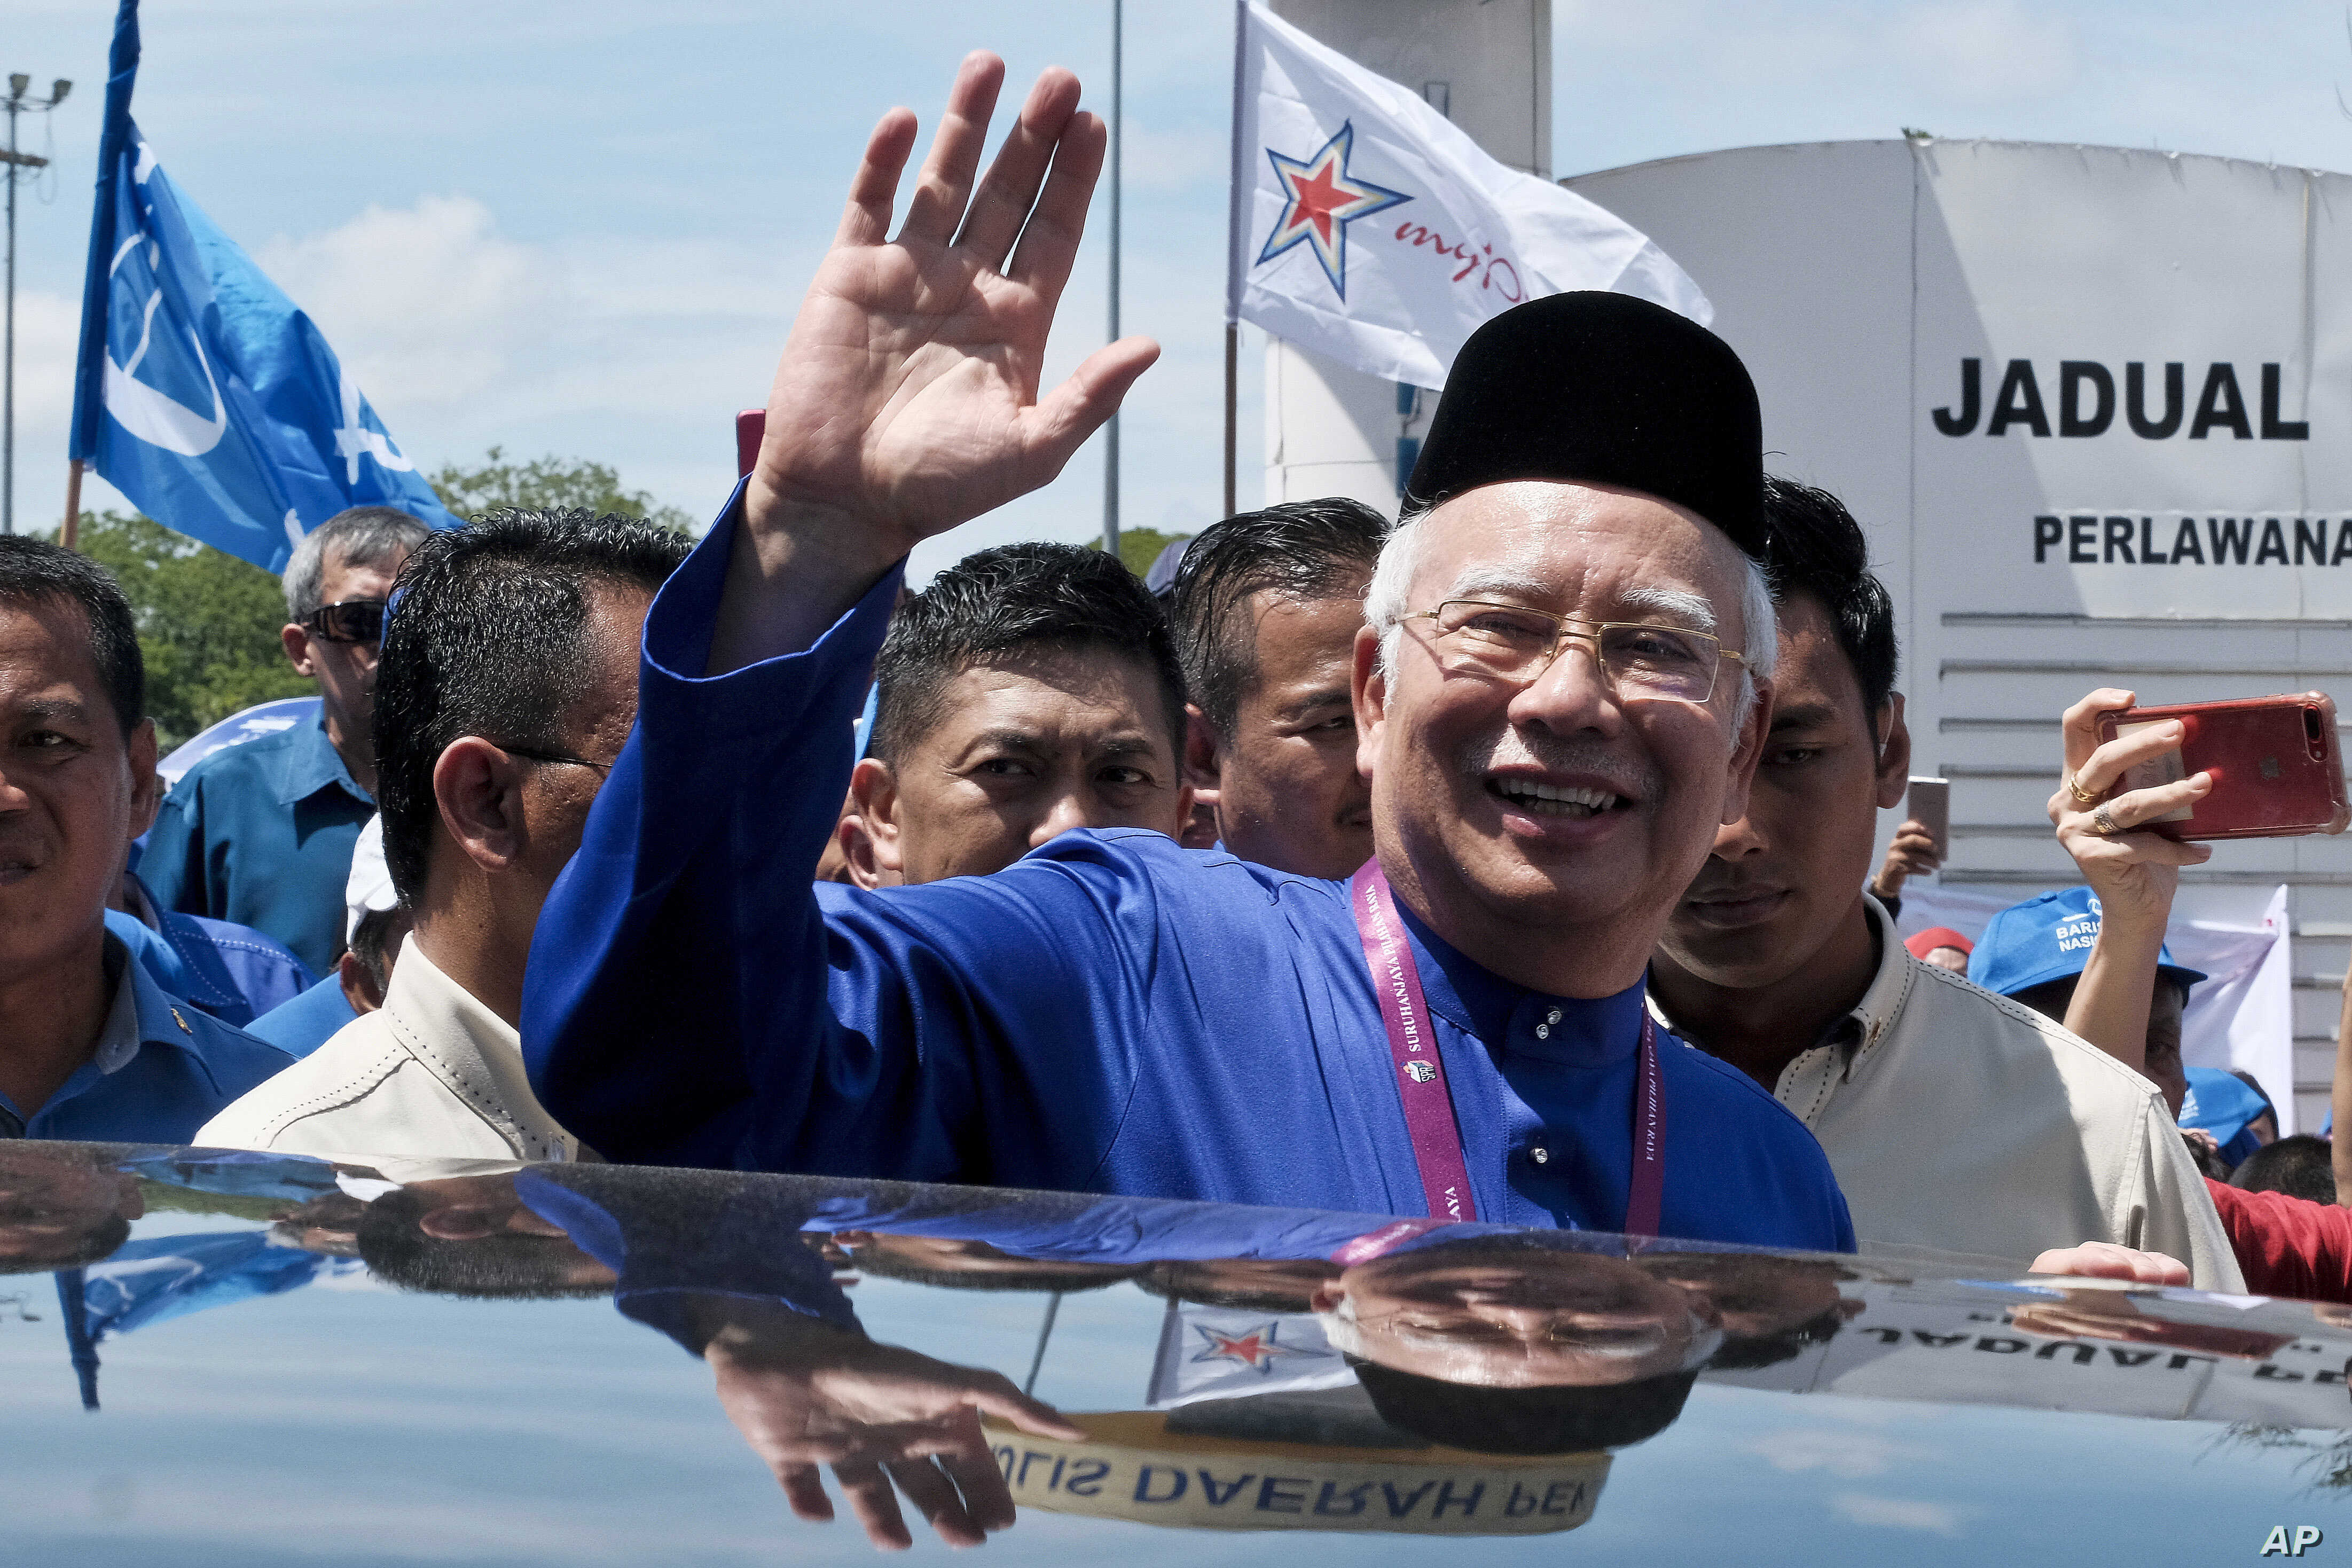 Malaysian Prime Minister Najib Razak waves to his supporters after his election nomination in Pekan, Pahang state, Malaysia, April 28, 2018.